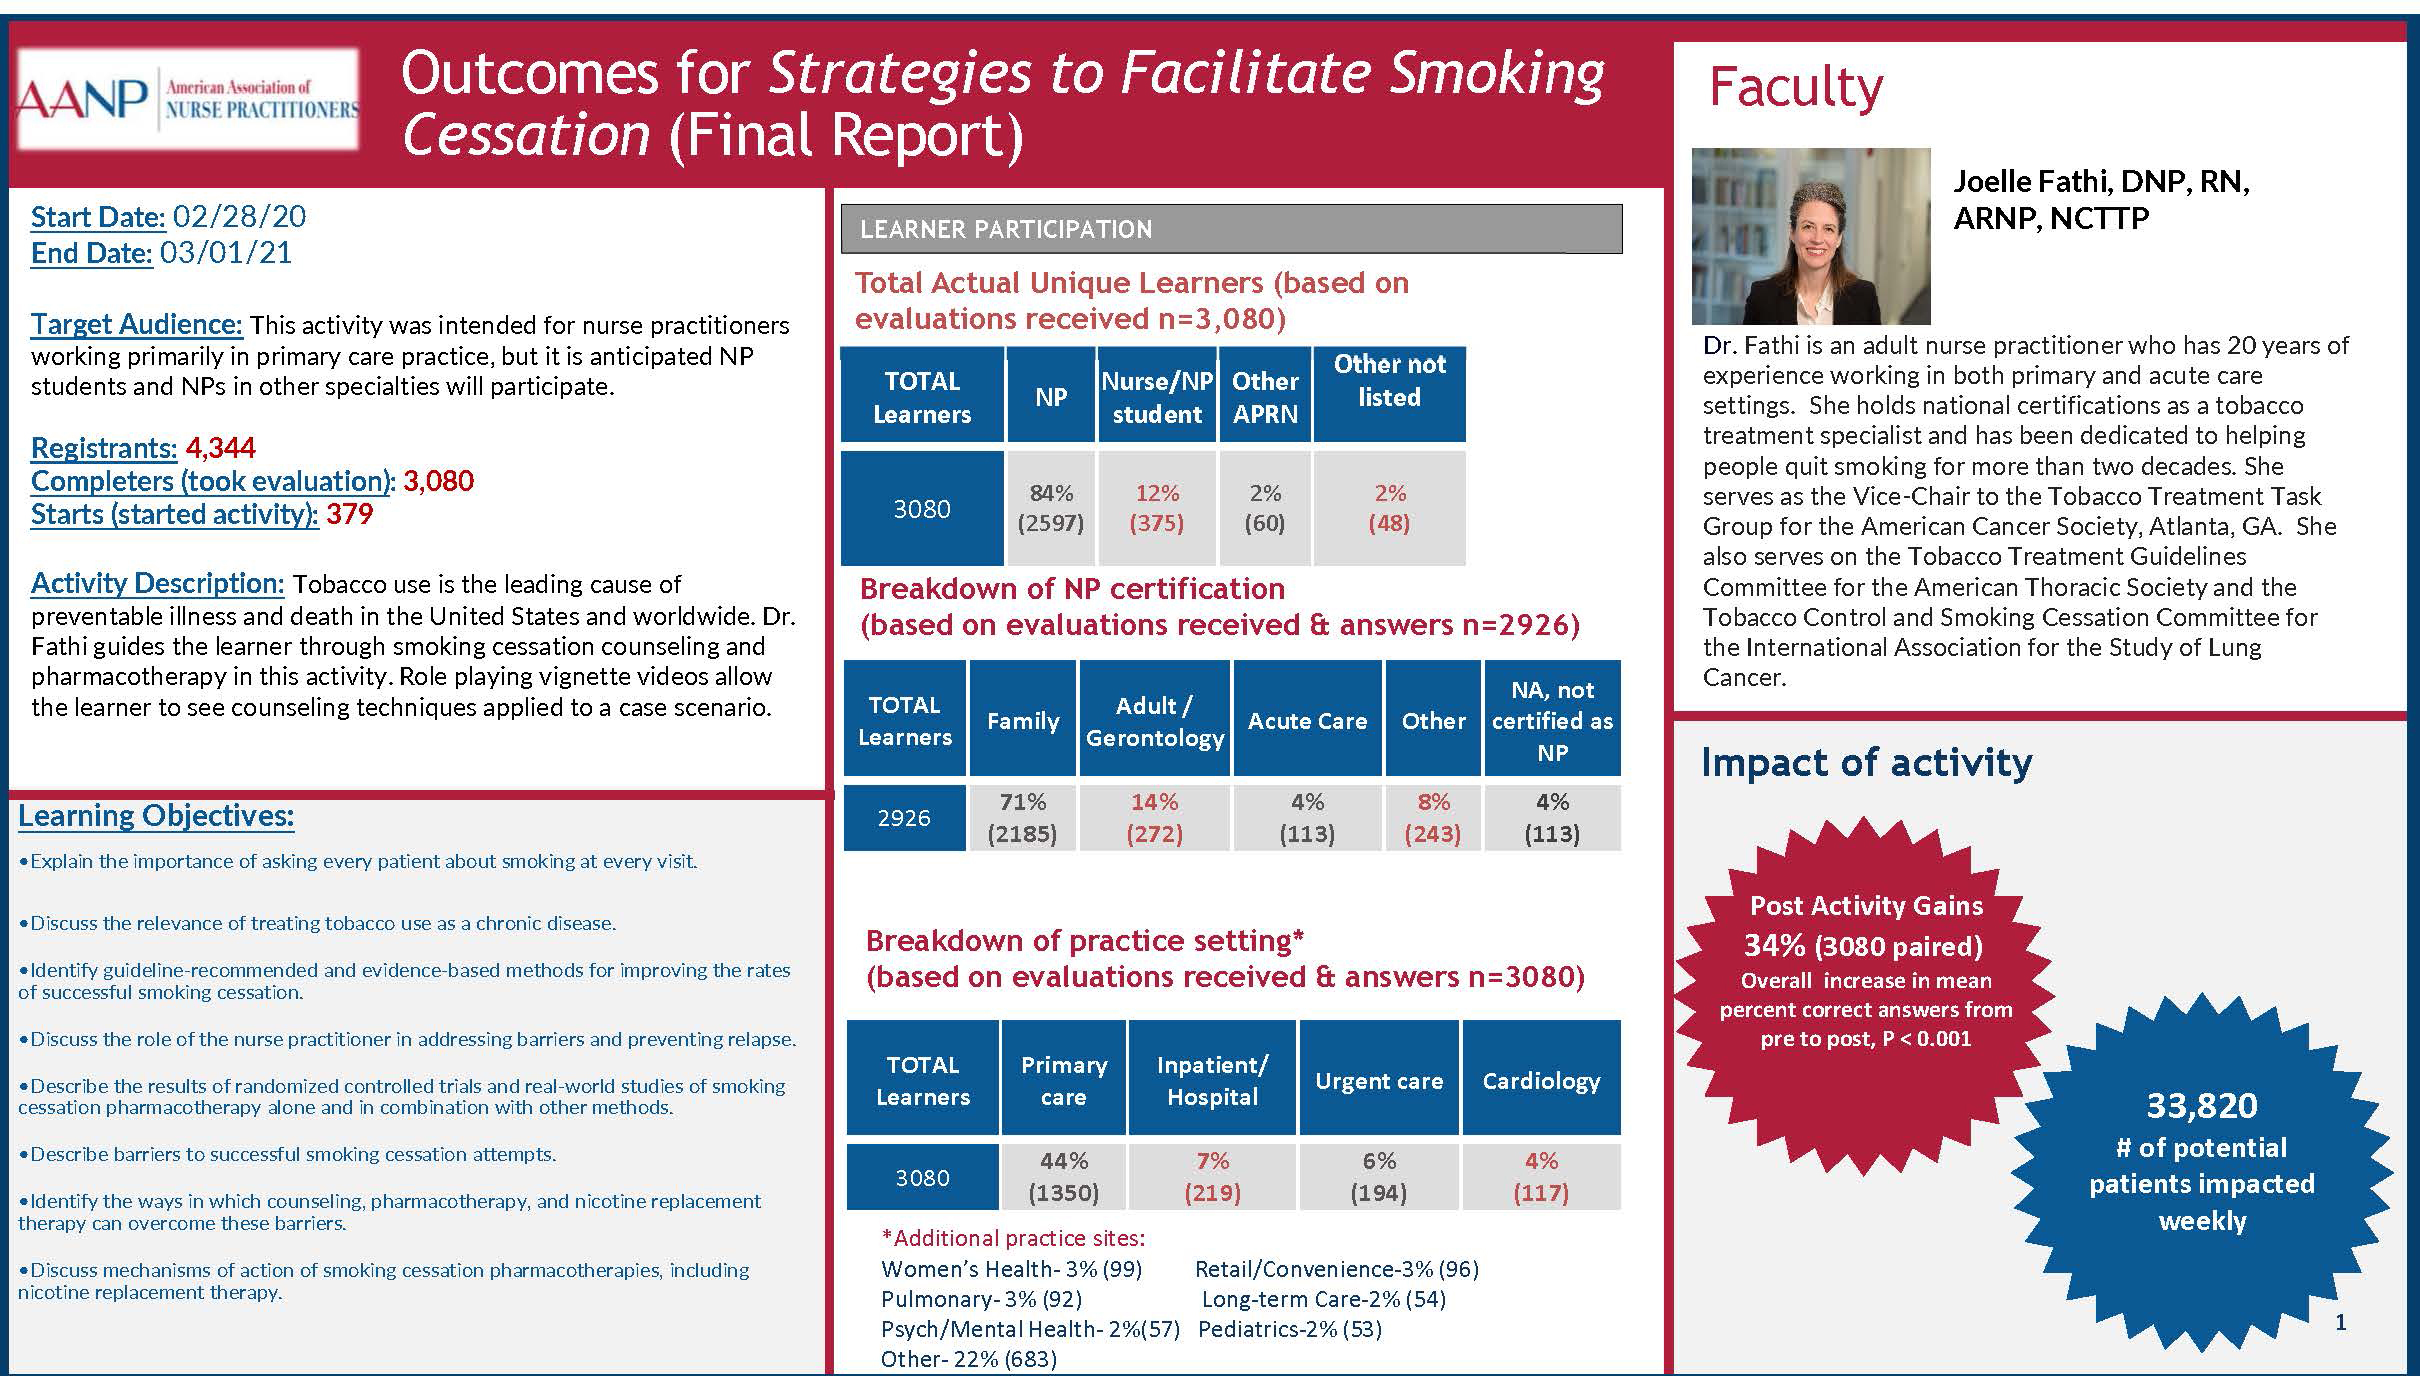 Outcomes for Strategies to Facilitate Smoking Cessation (Final Report)